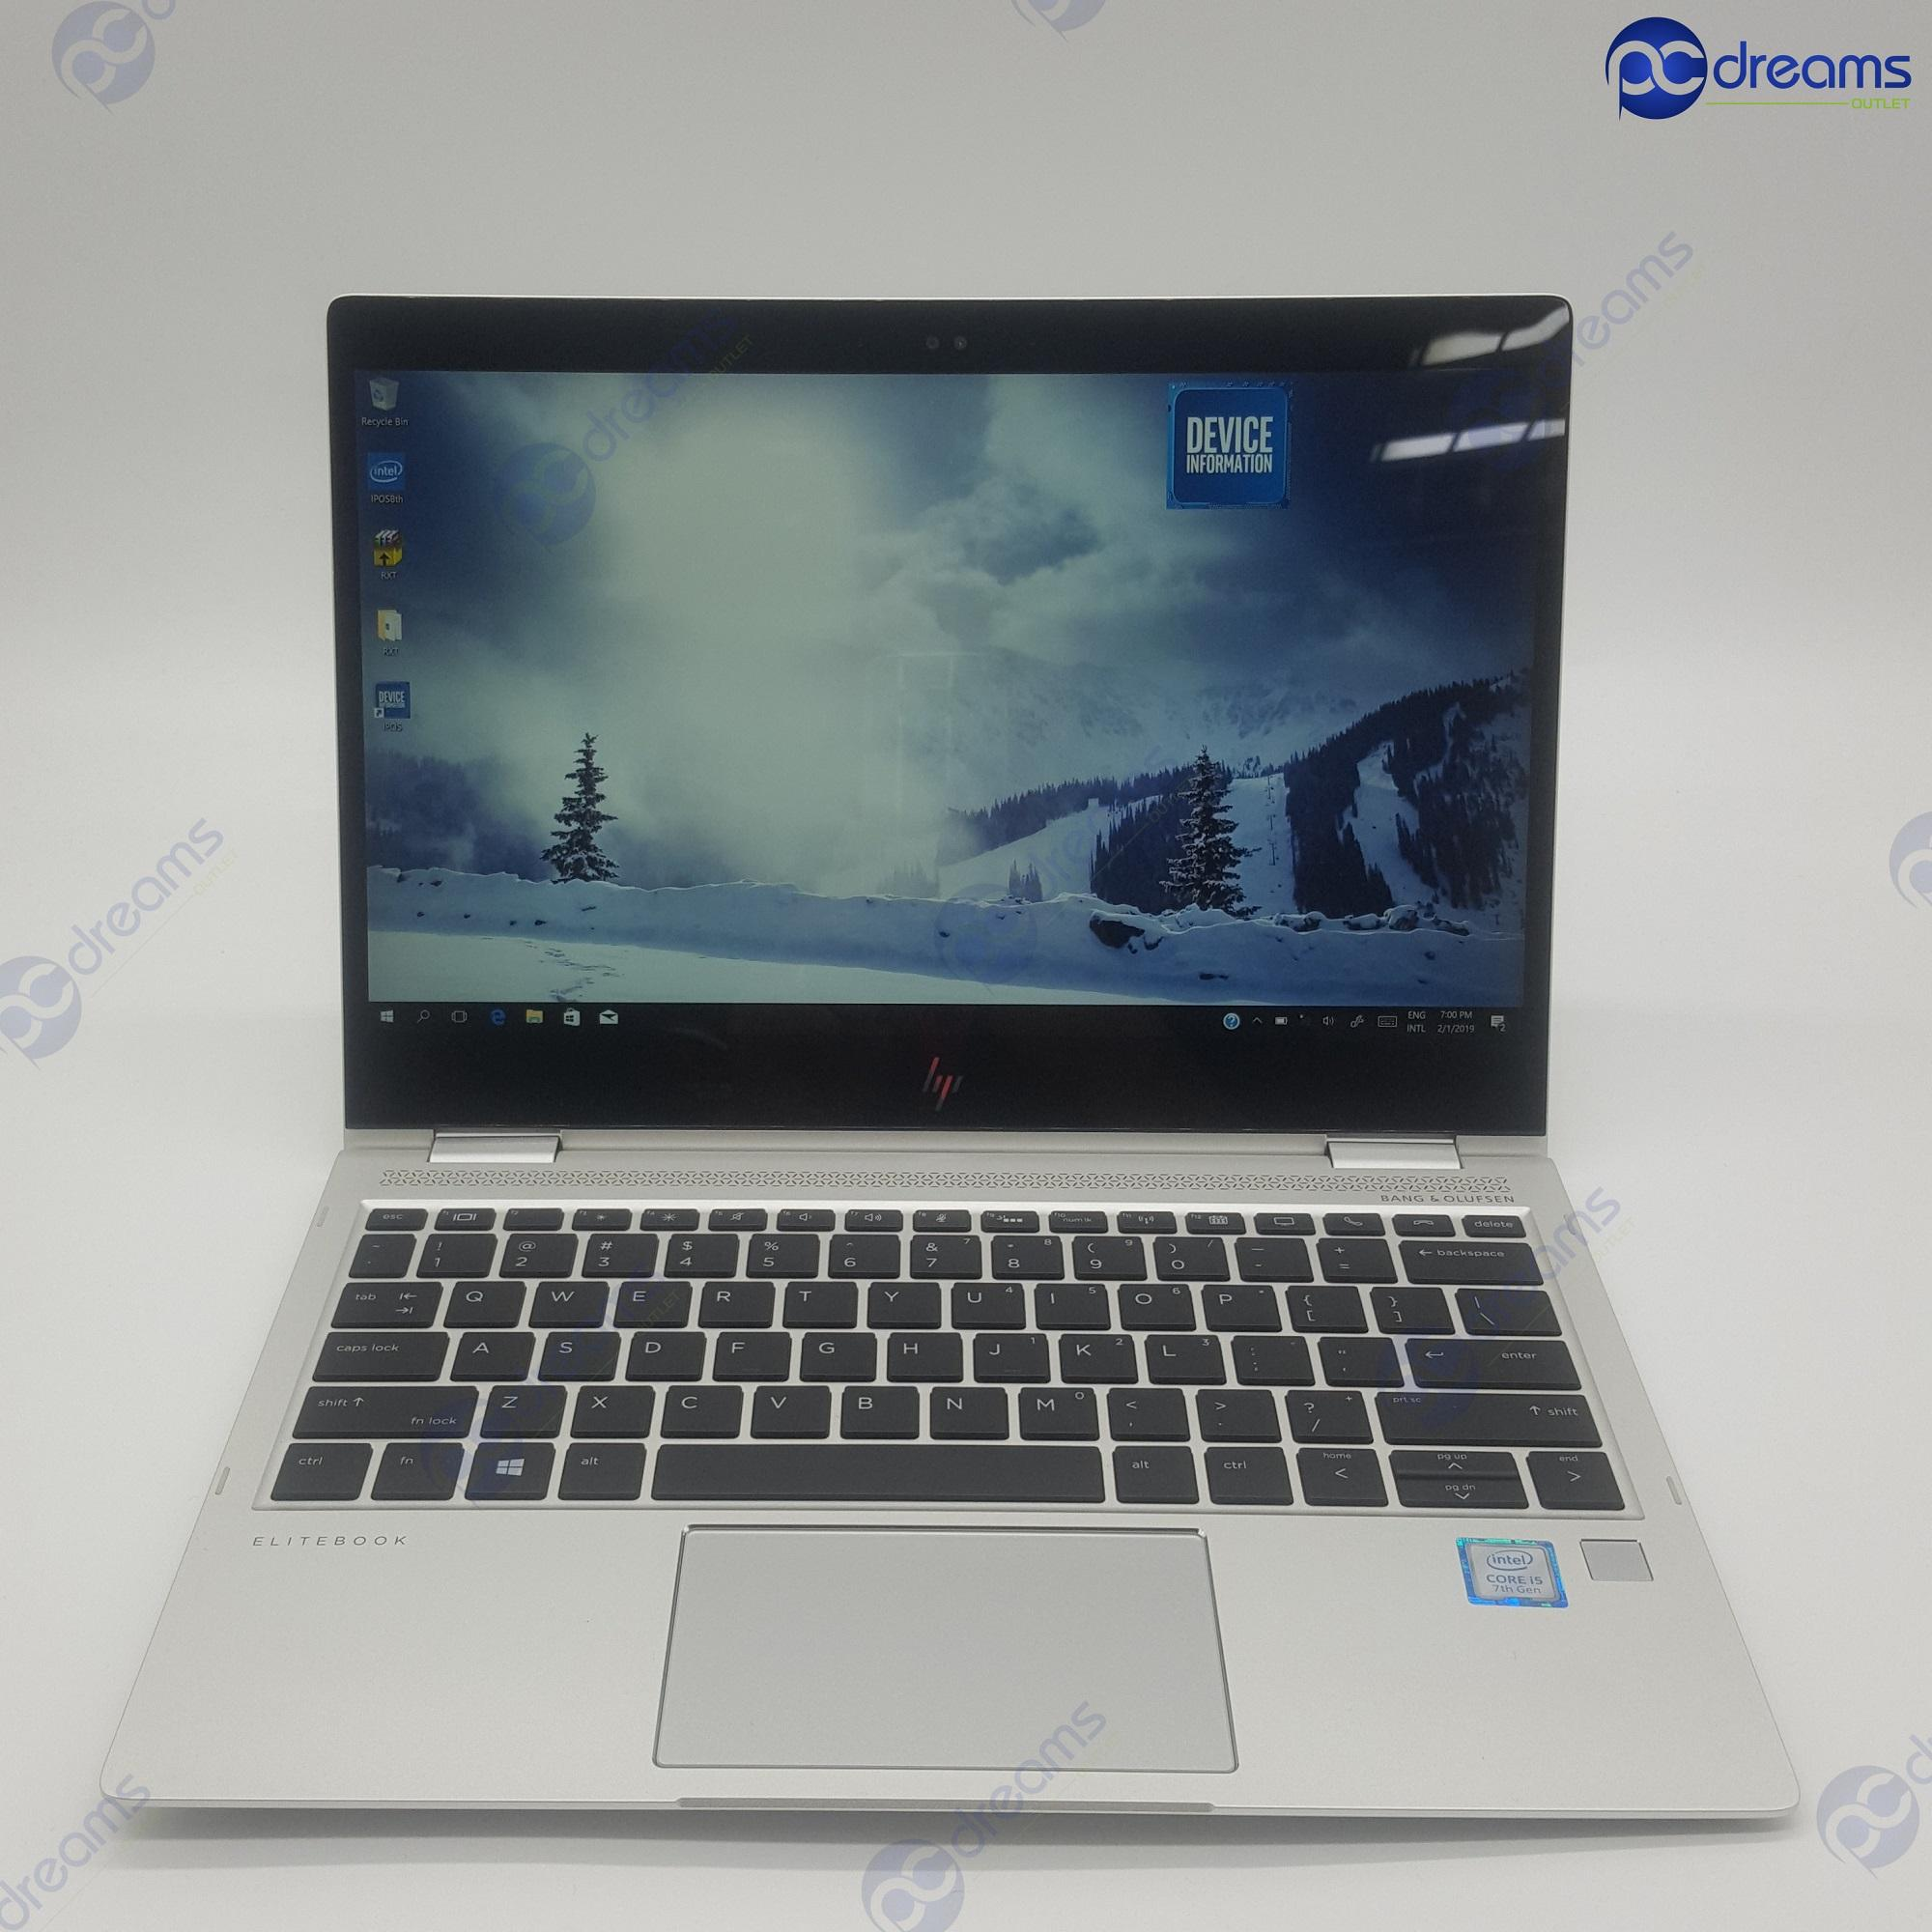 HP ELITEBOOK X360 1020 G2 (3CW34PA) i5-7200U/8GB/256GB PCIe SSD [Premium Refreshed]